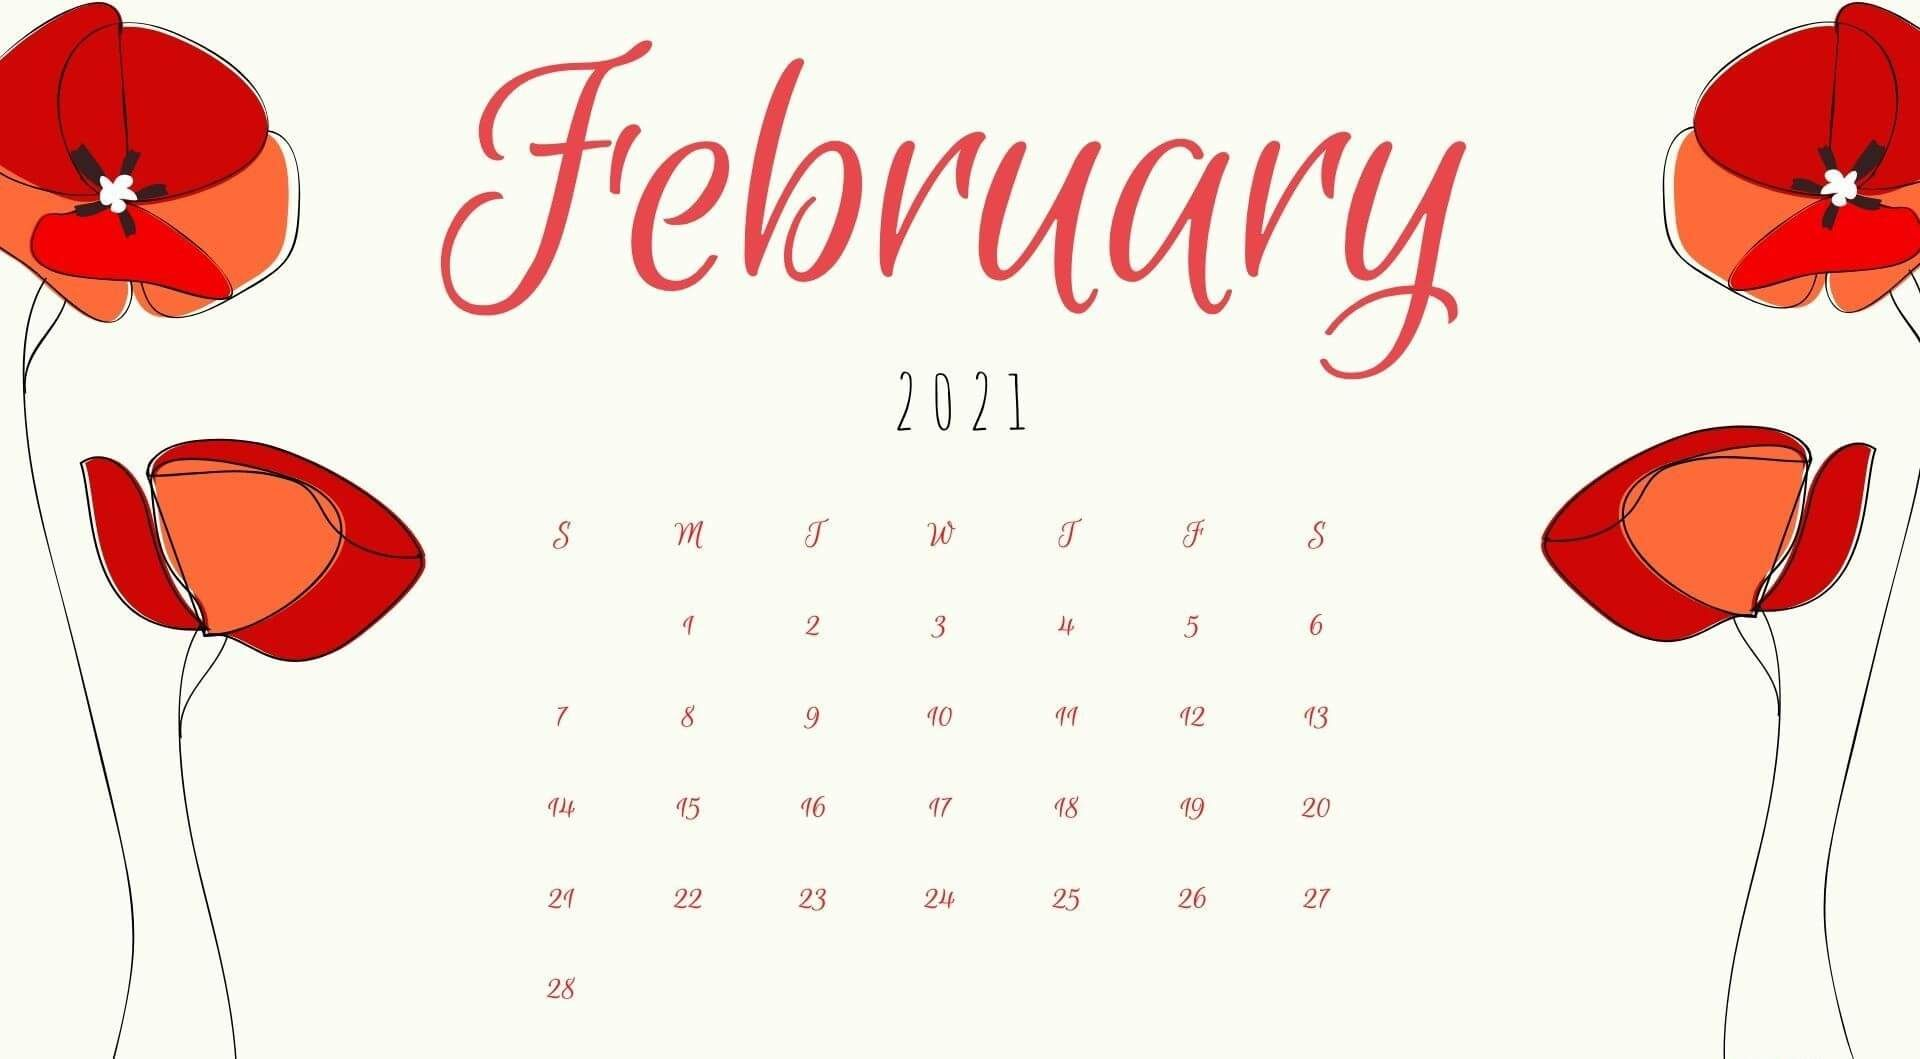 February 2021 Calendar HD Wallpaper Calendar wallpaper 2021 1920x1059